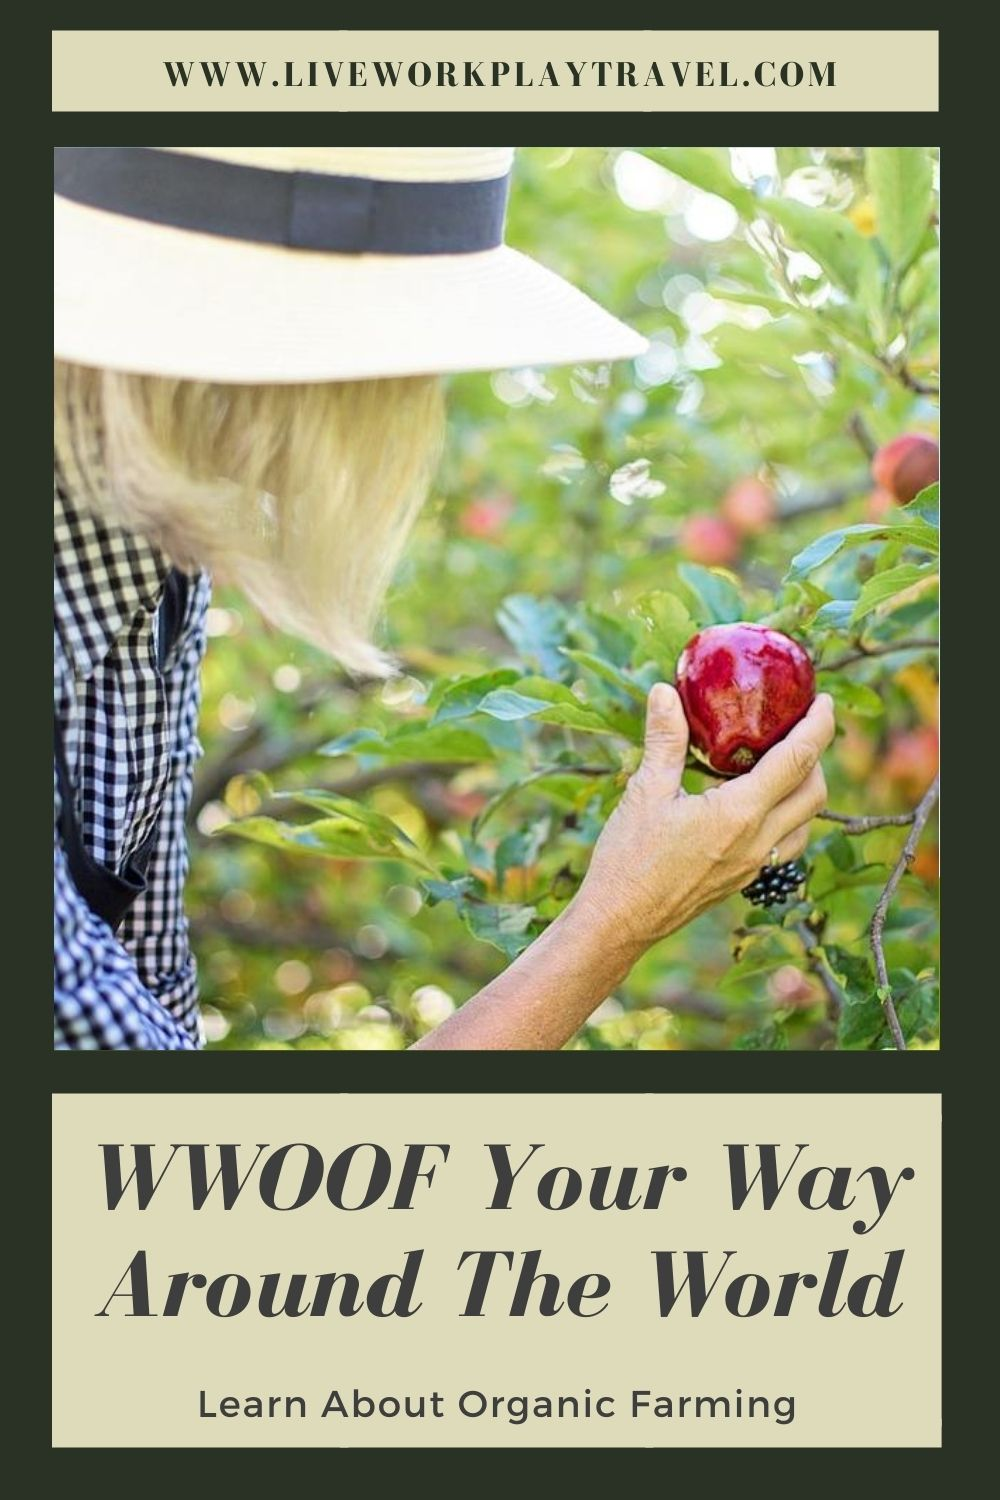 Pinterest Pin Lady With Apple WWOOFing